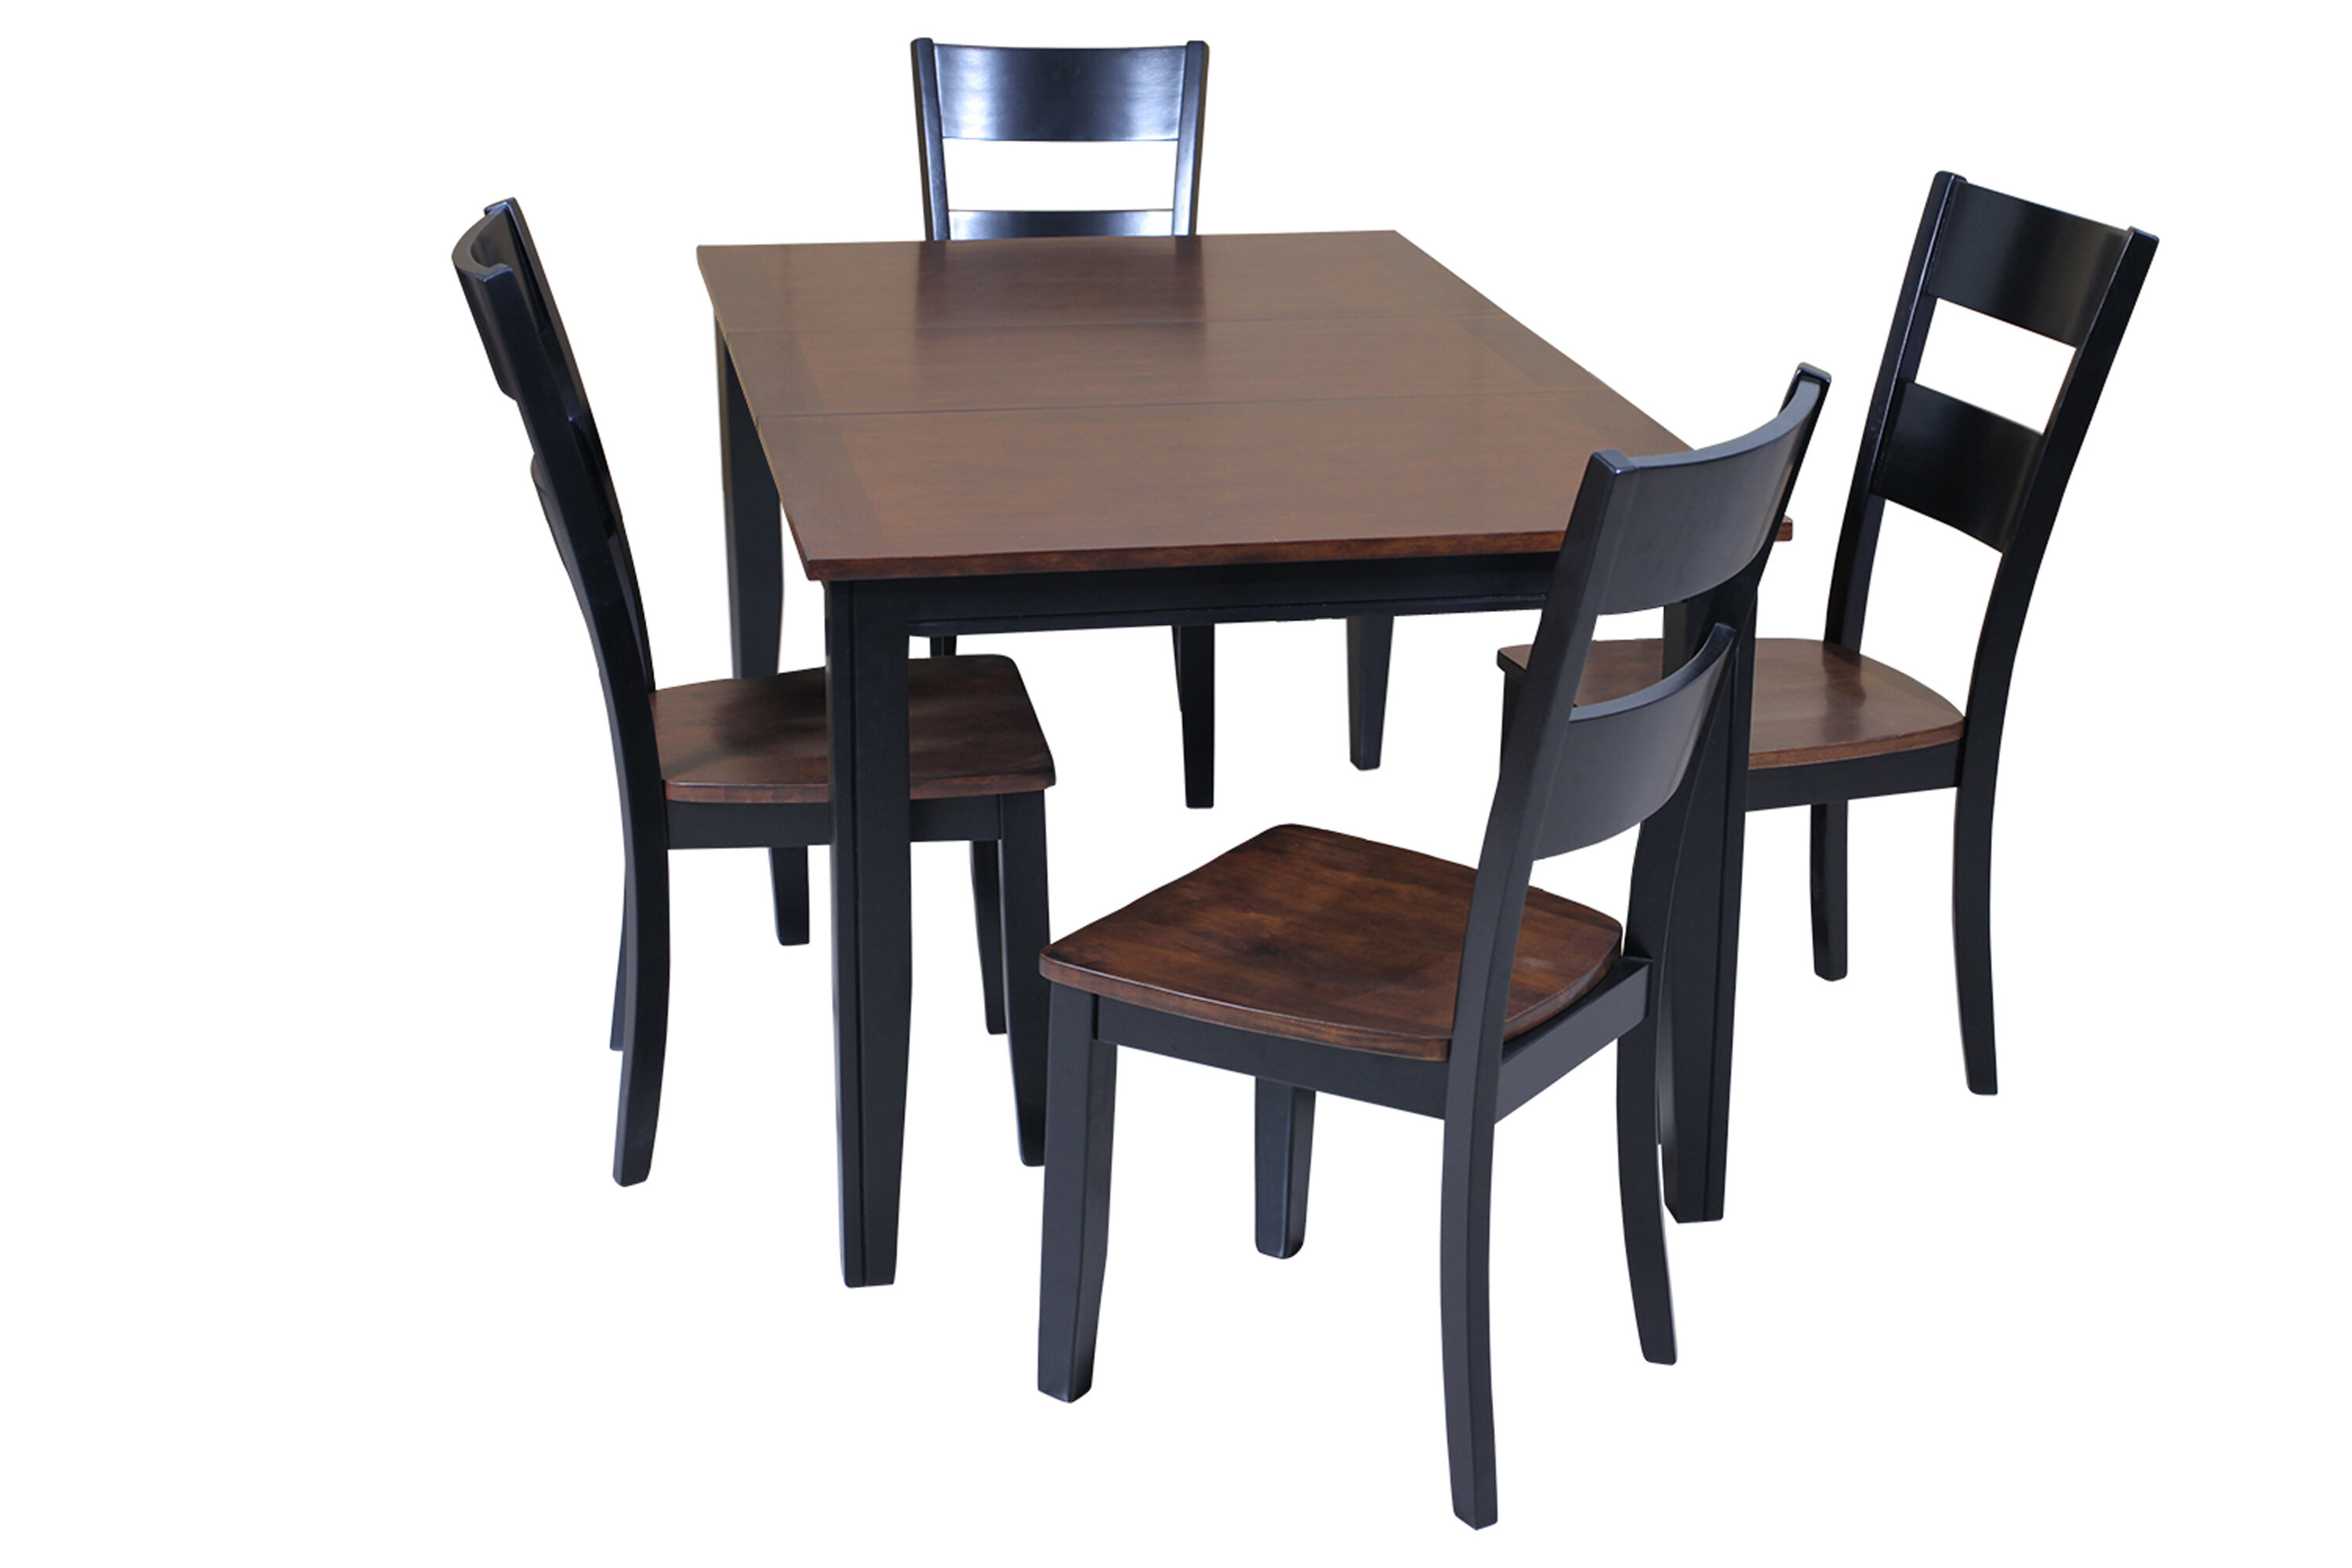 Red Barrel Studio Haan 5 Piece Solid Wood Dining Set With Butterfly Leaf  Table | Wayfair